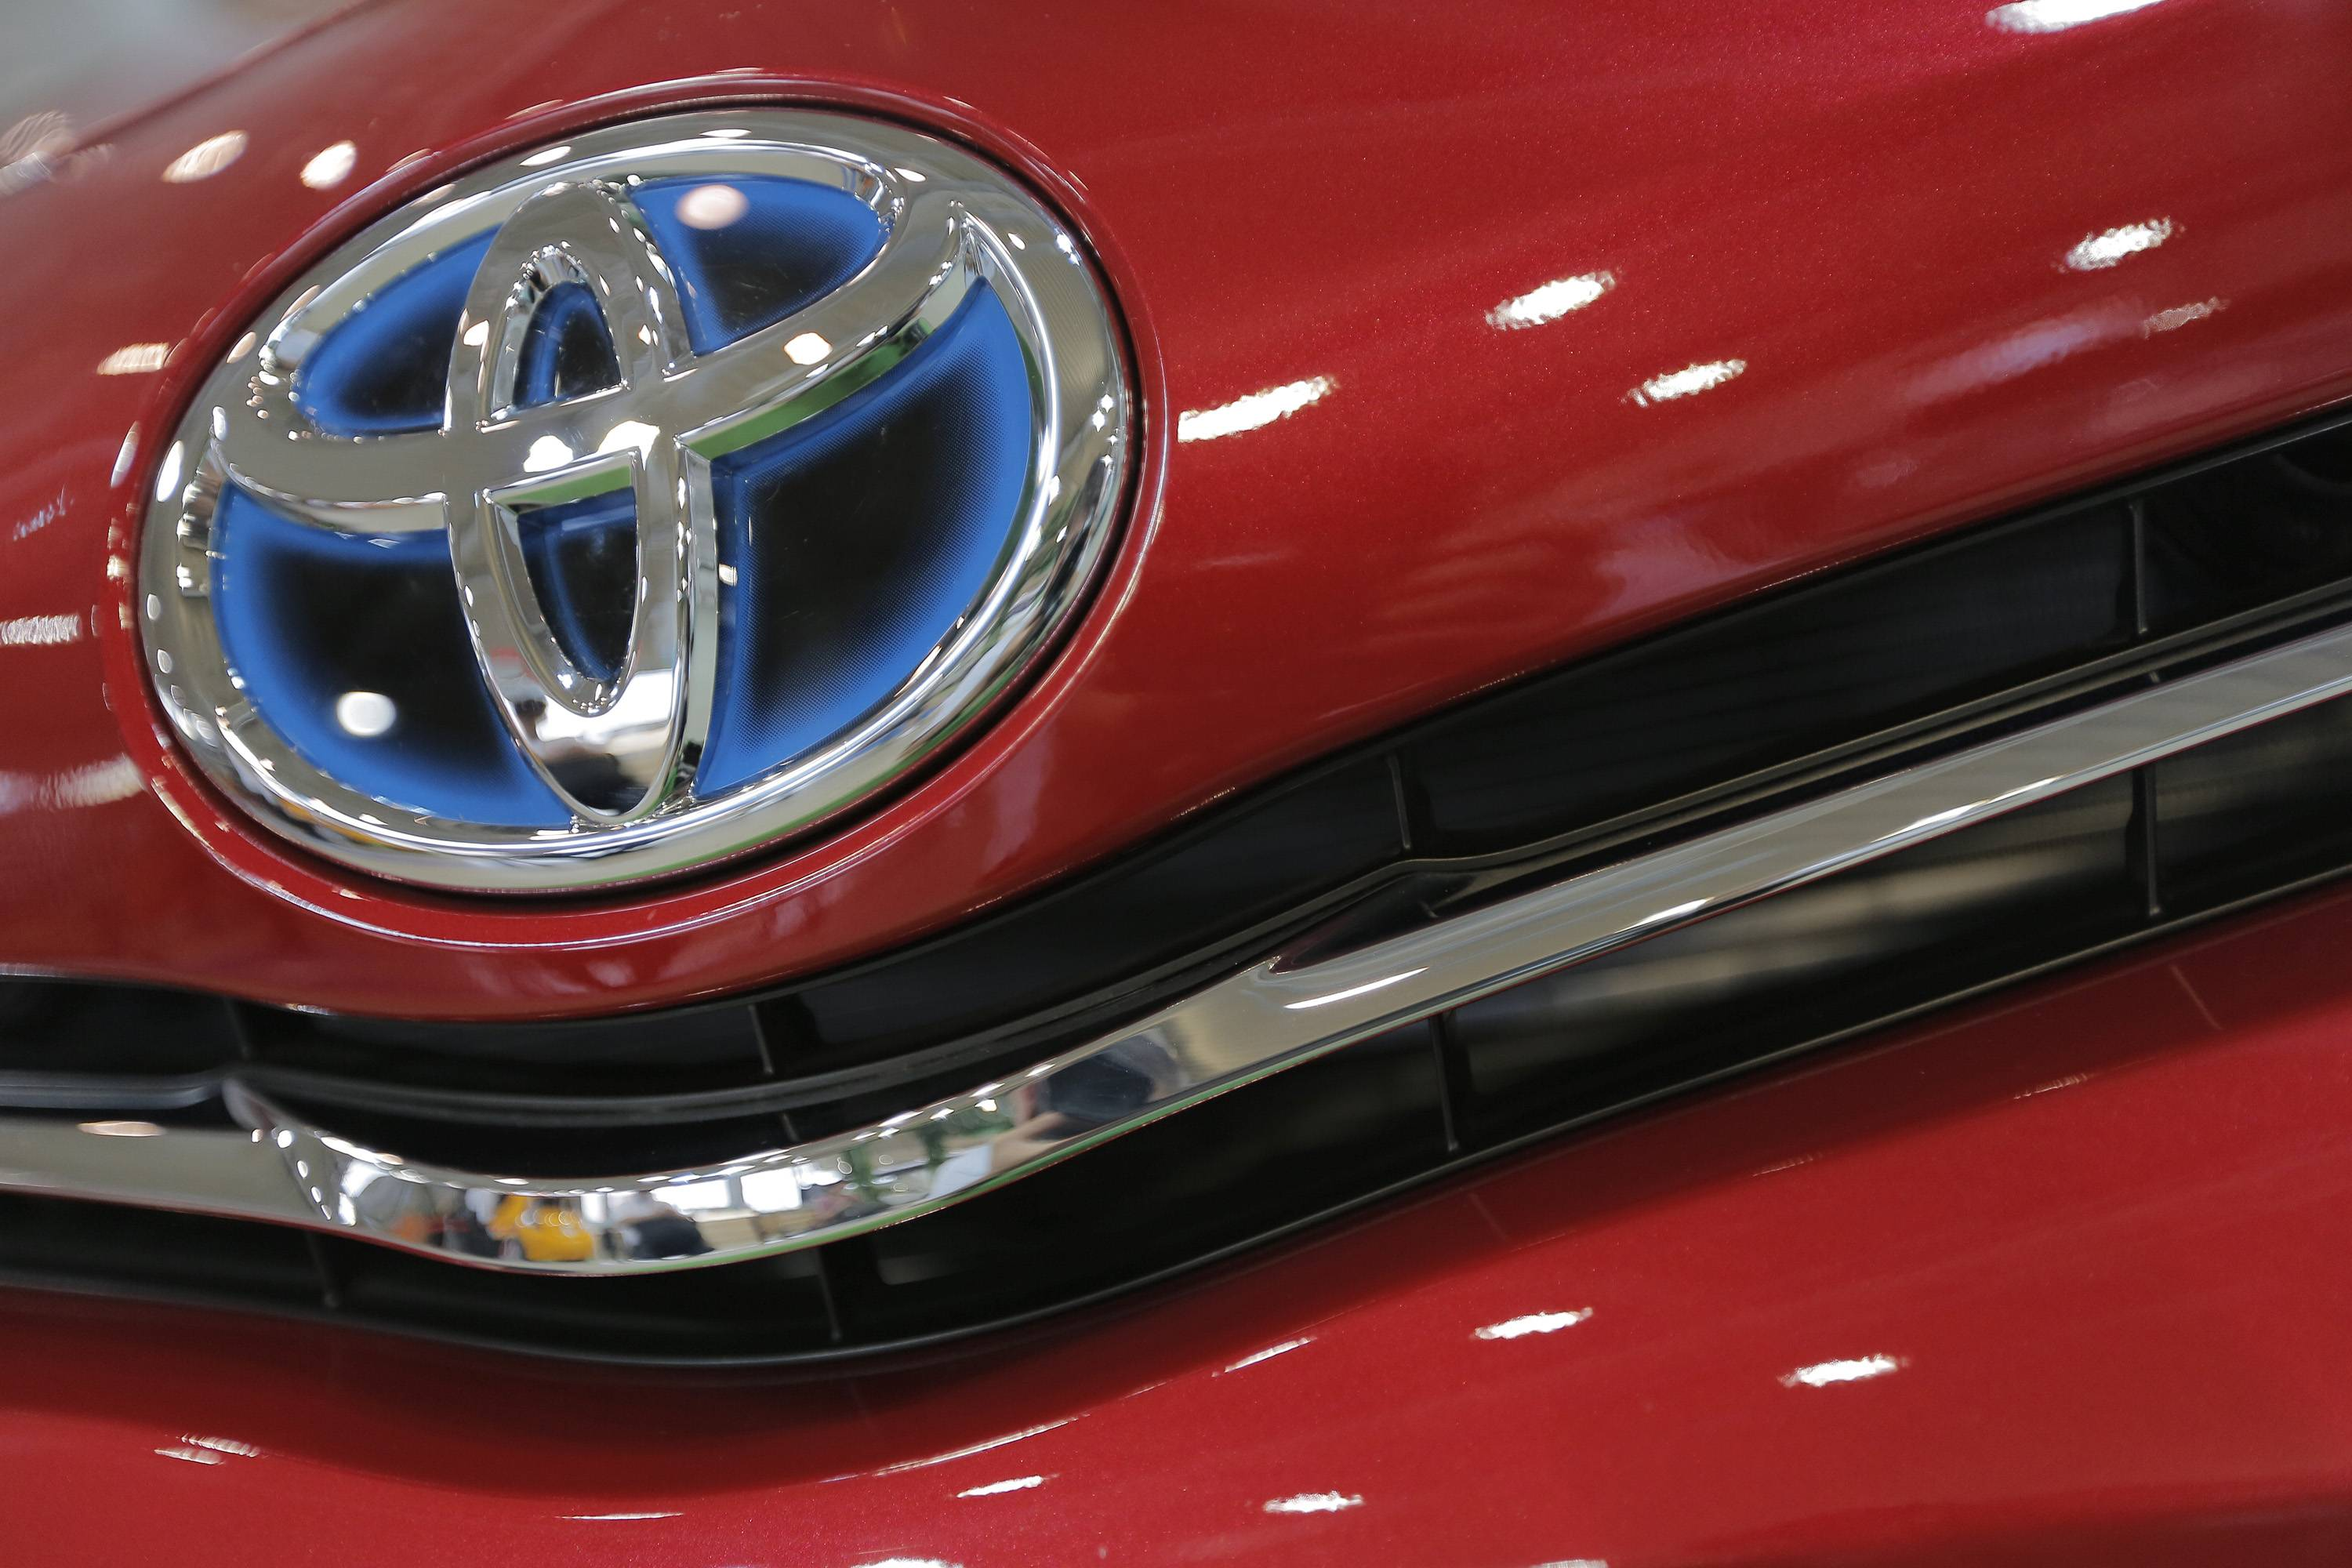 Toyota Motor Corp. is recalling 6.39 million vehicles globally for a variety of problems spanning nearly 30 models in Japan, U.S., Europe and other places.